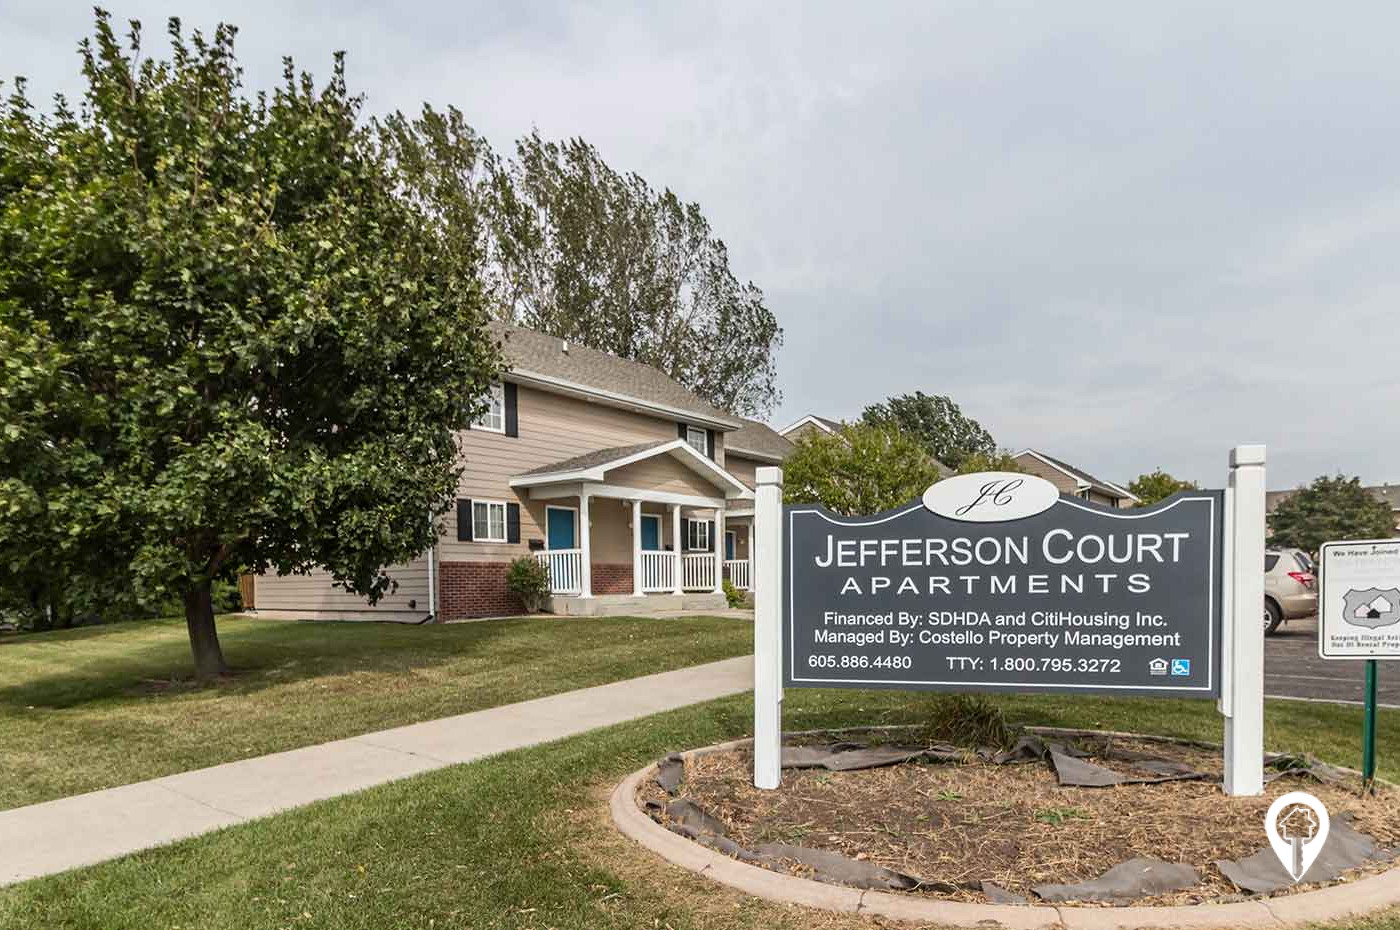 Jefferson Court Townhomes